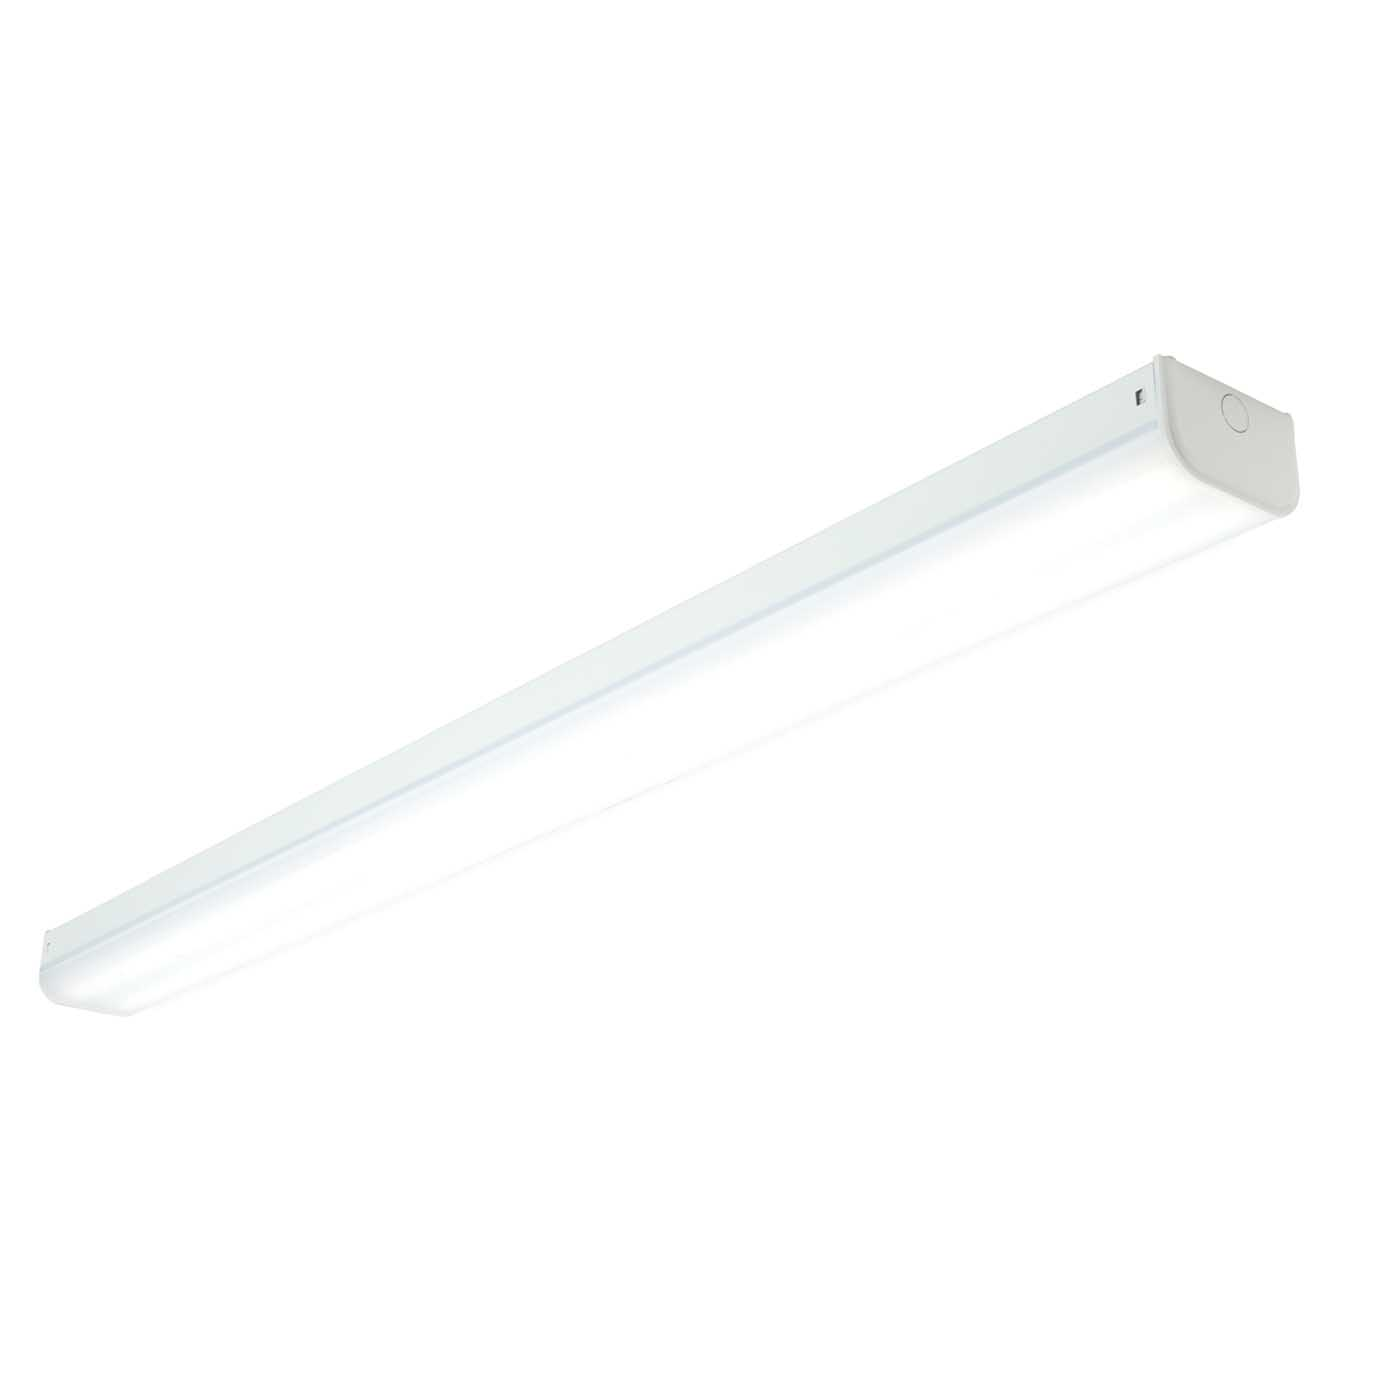 Saxby Linear Indoor Flush Batten Light Opal Pc 60W LED (SMD 2835) Cool White